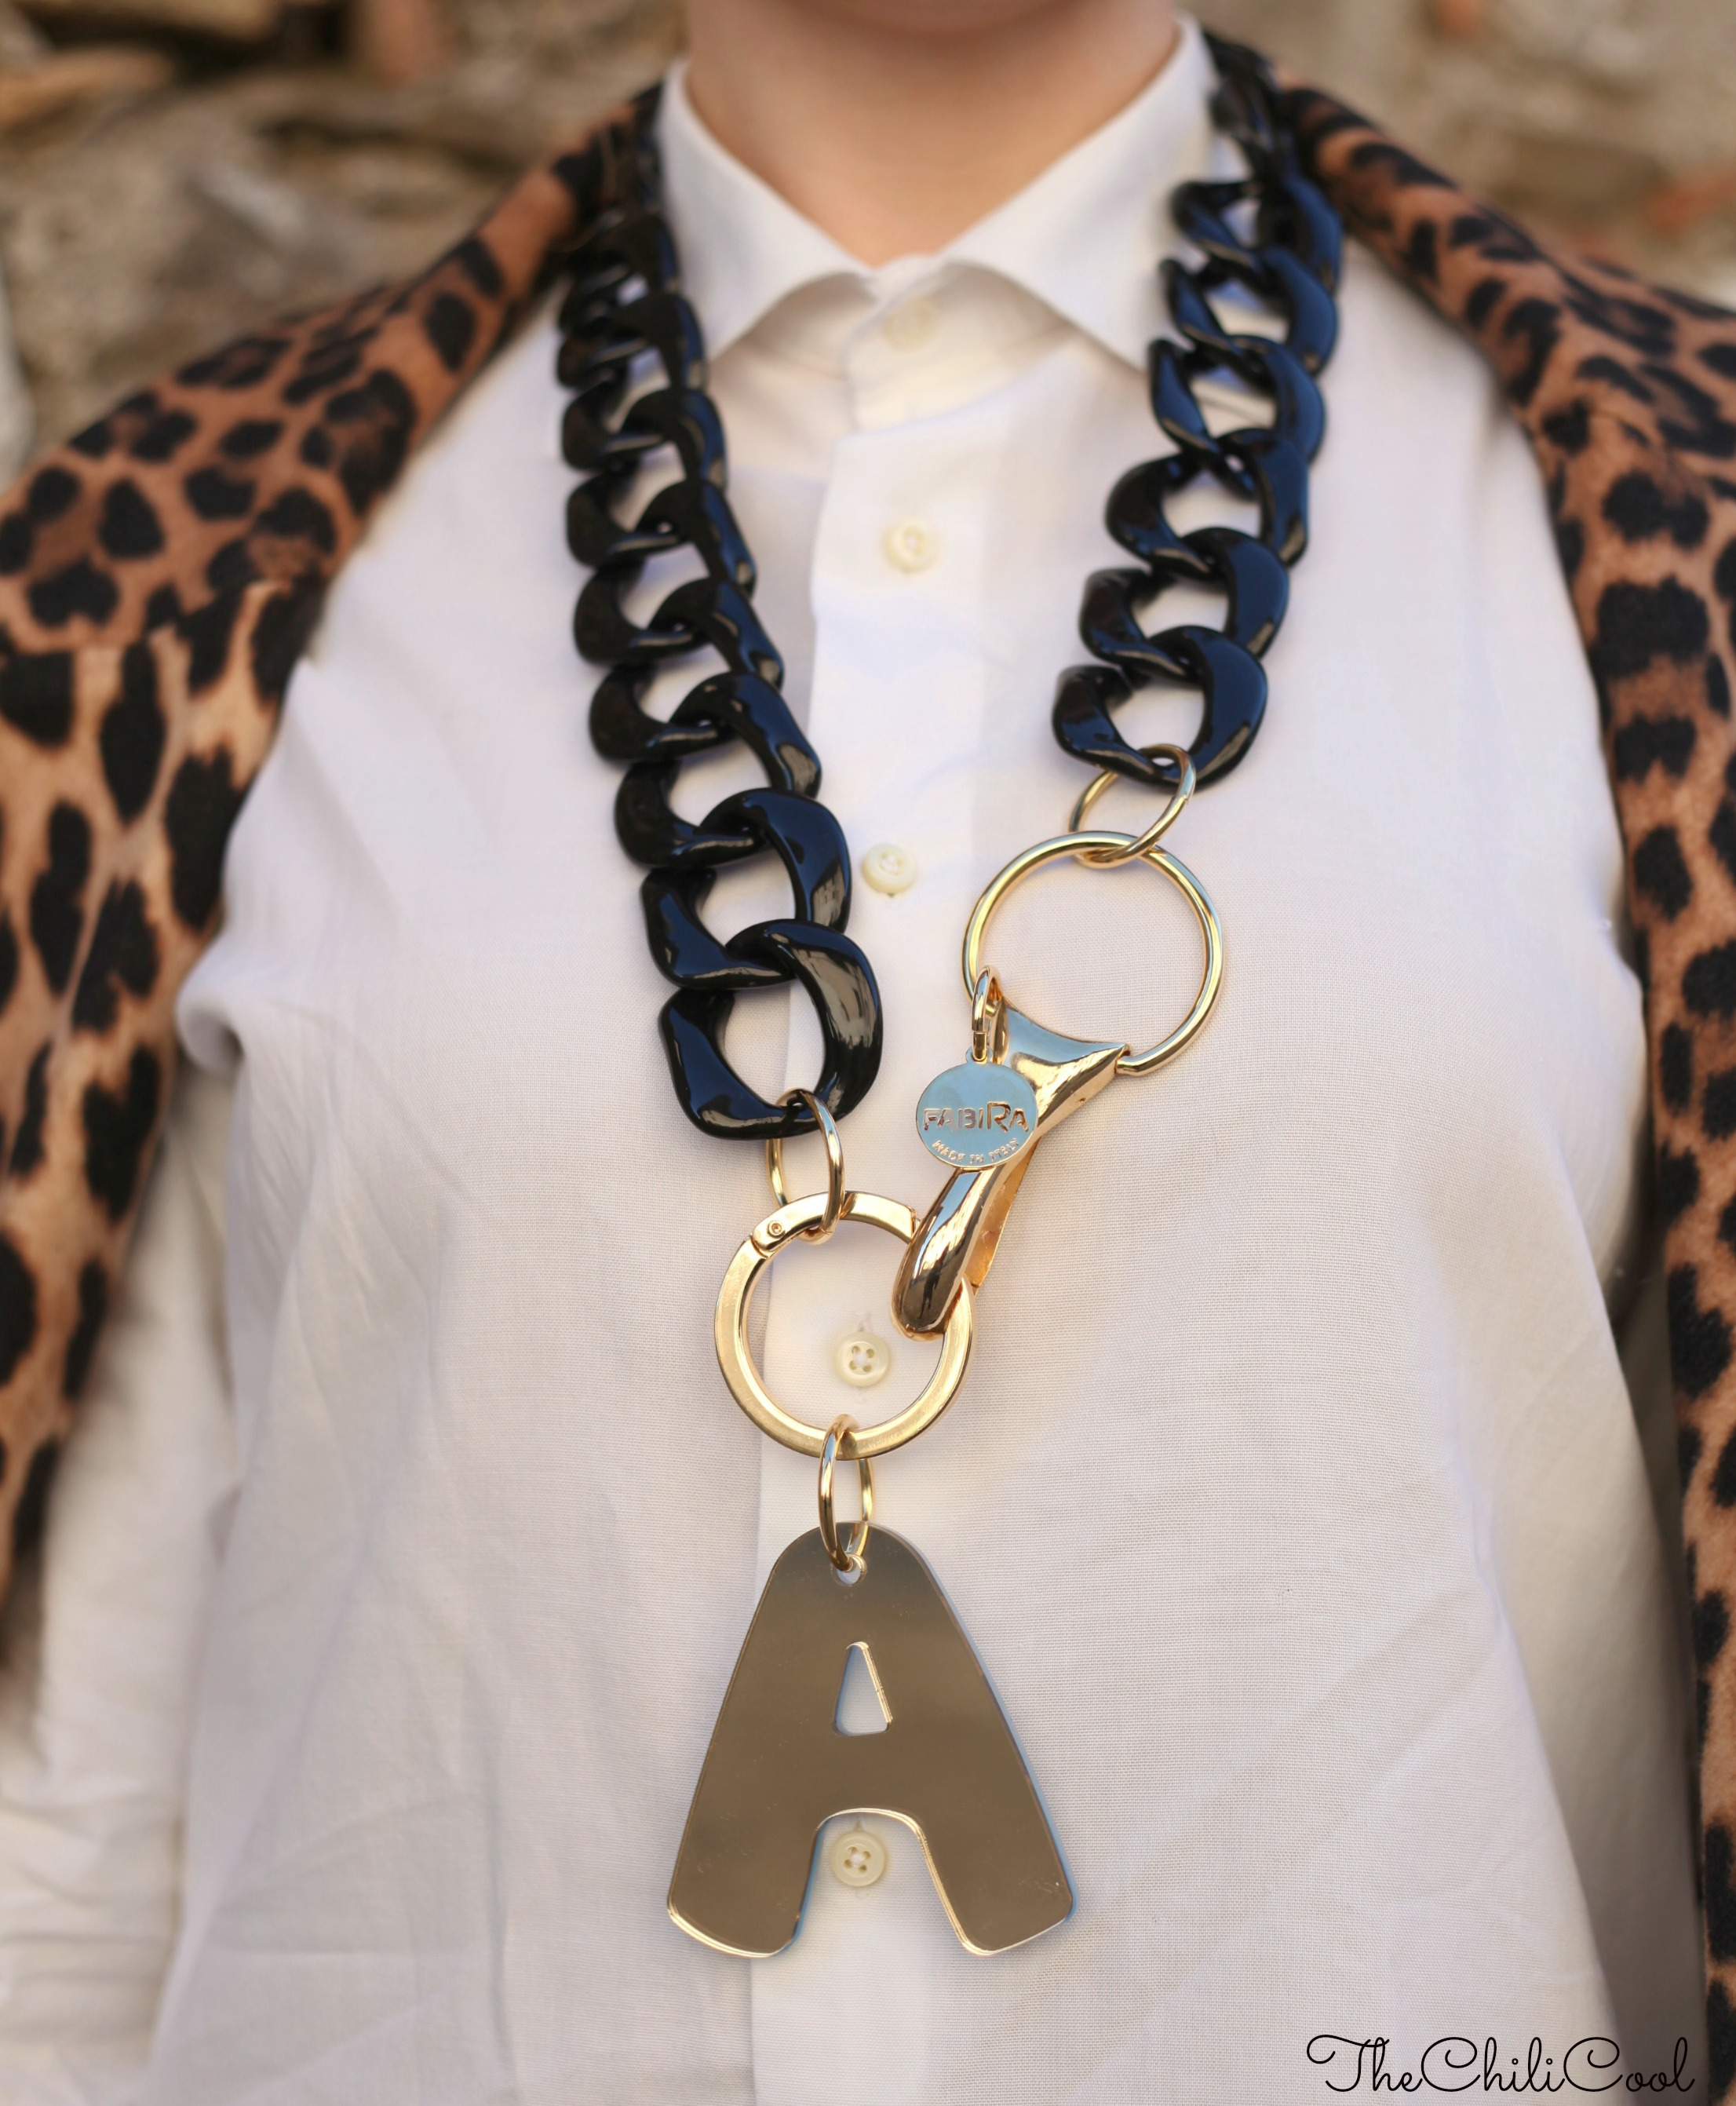 alessia milanese, thechilicool, fashion blog, fashion blogger, animalier e nero, chanel 2.55